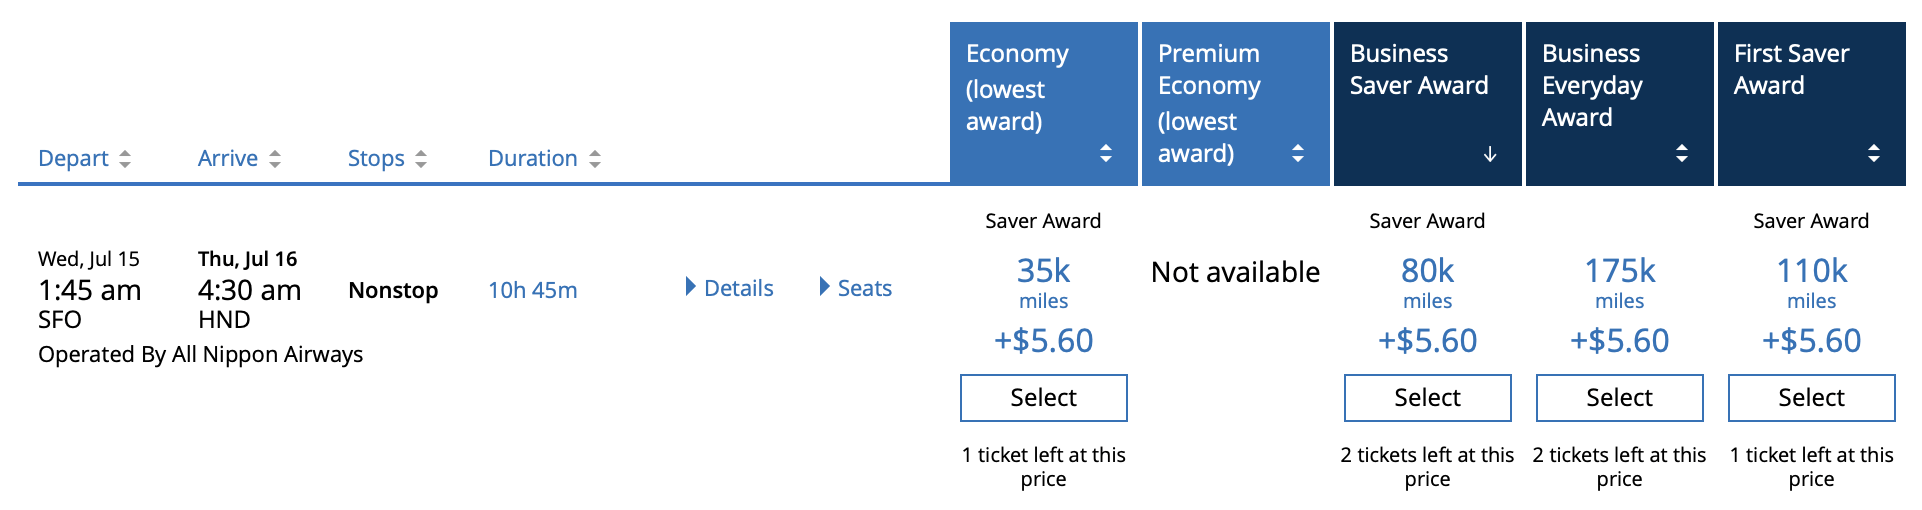 Finding ANA Award Space on United.com